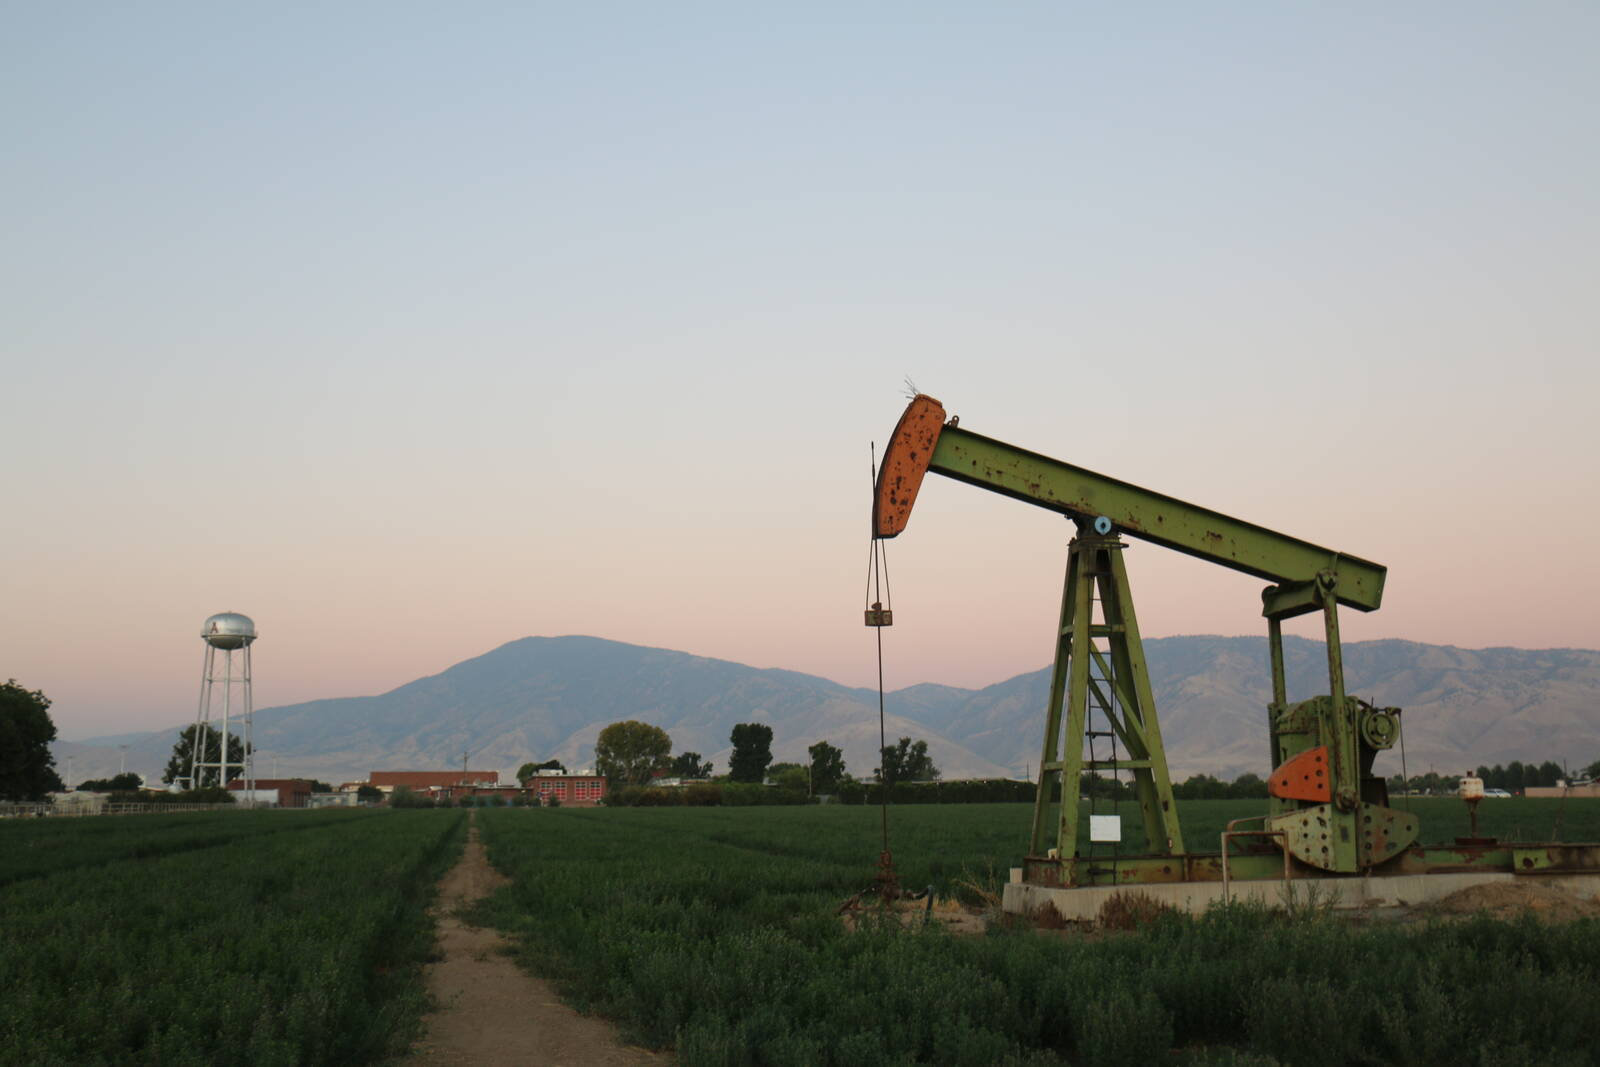 A pumpjack stands in a field next to Arvin High School with the Tehachapi Mountains in the background. Credit: Julia Kane